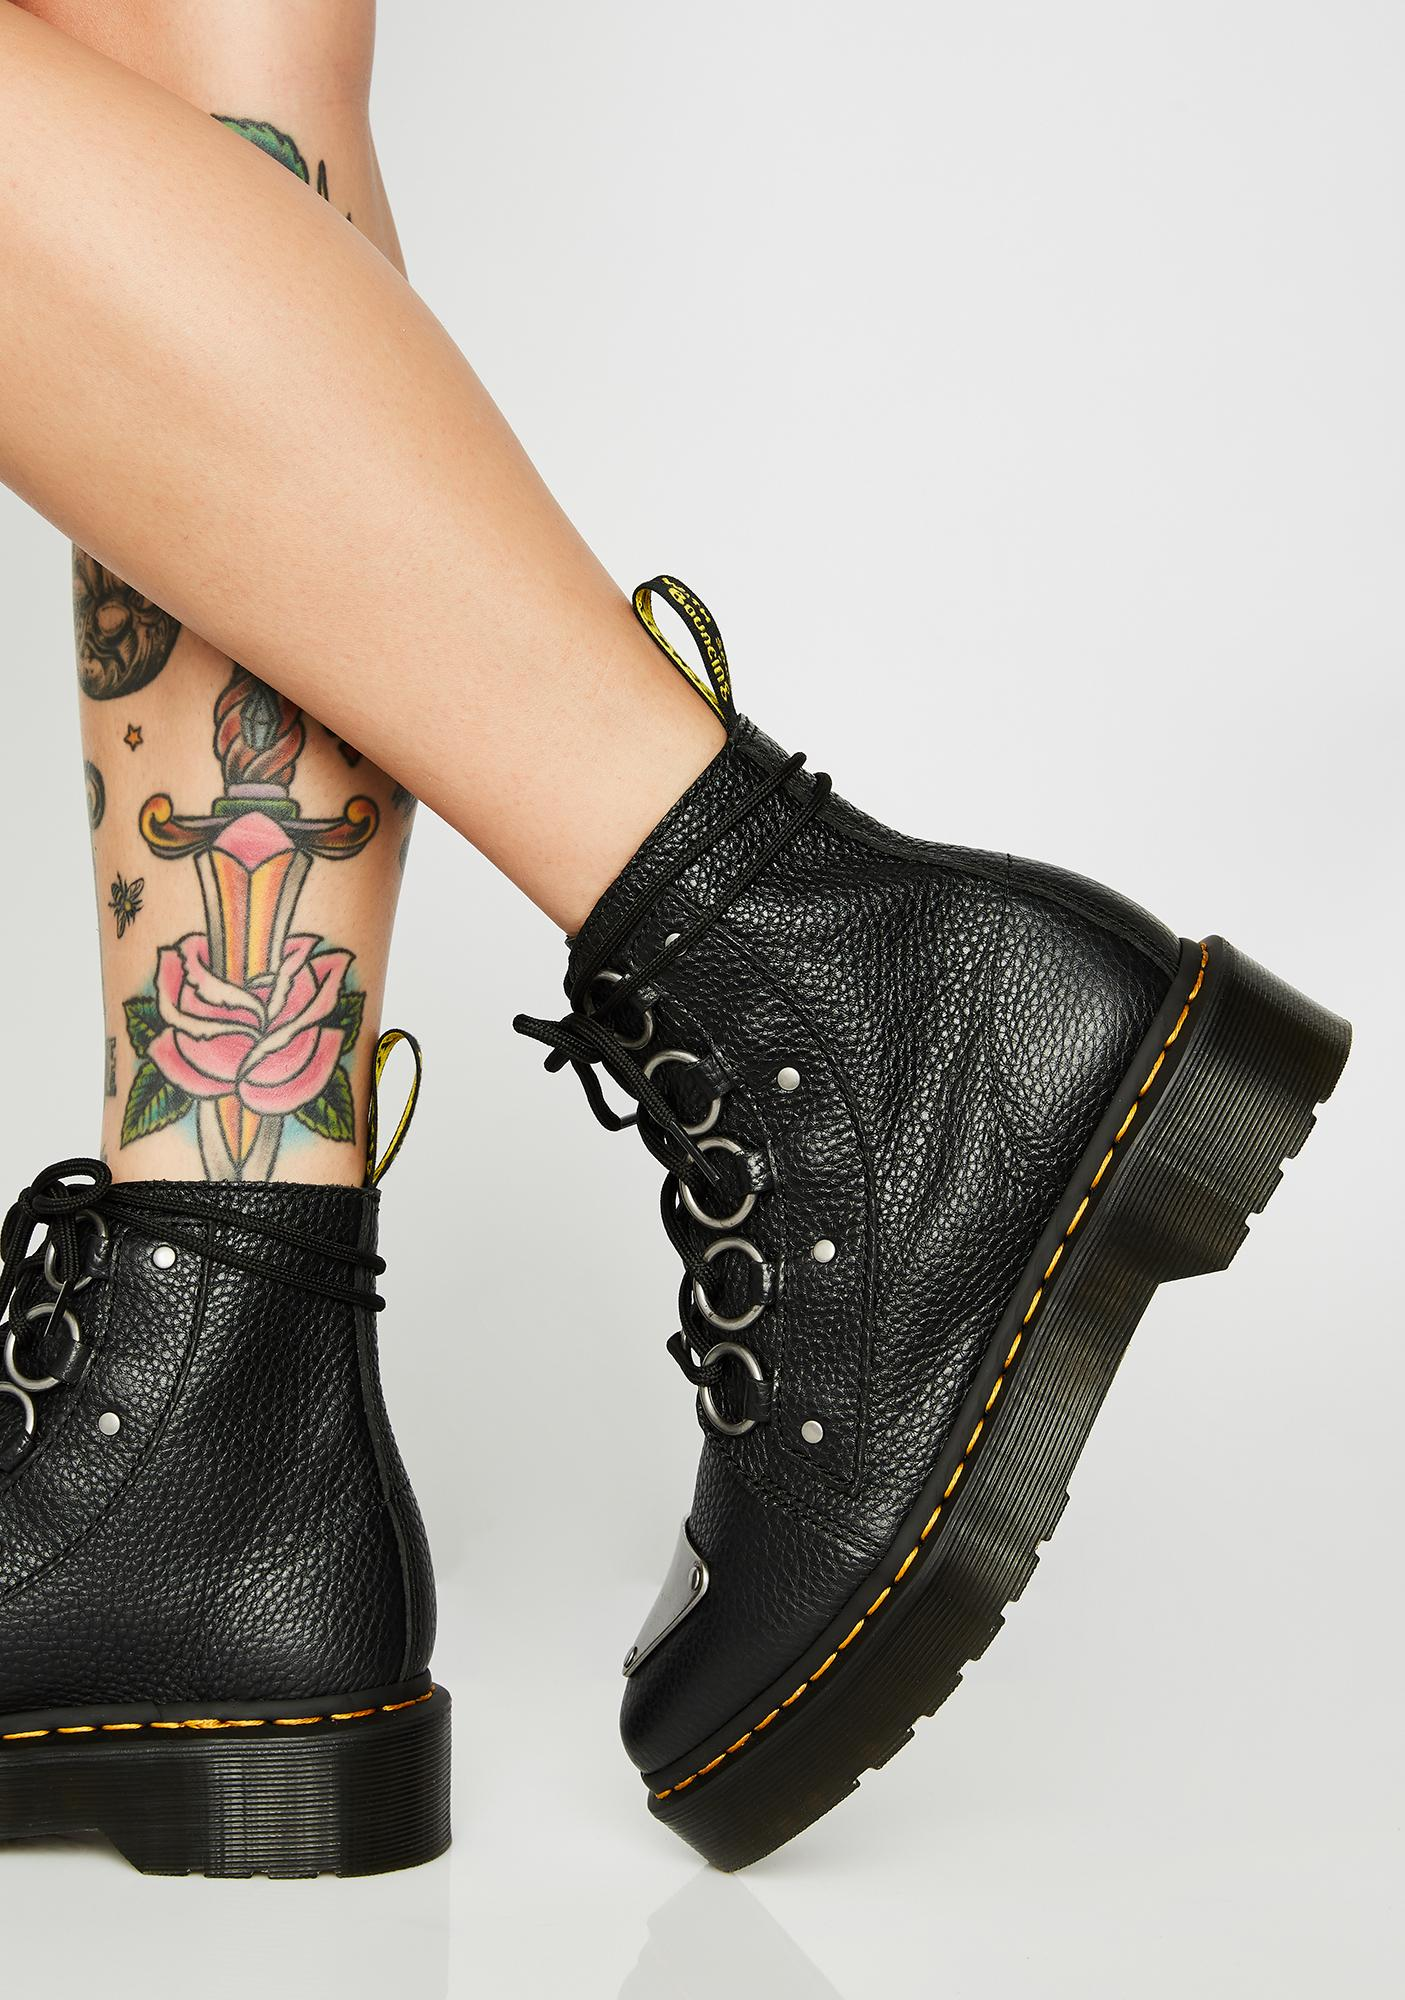 Dr. Martens Farylle Aunt Sally Boots